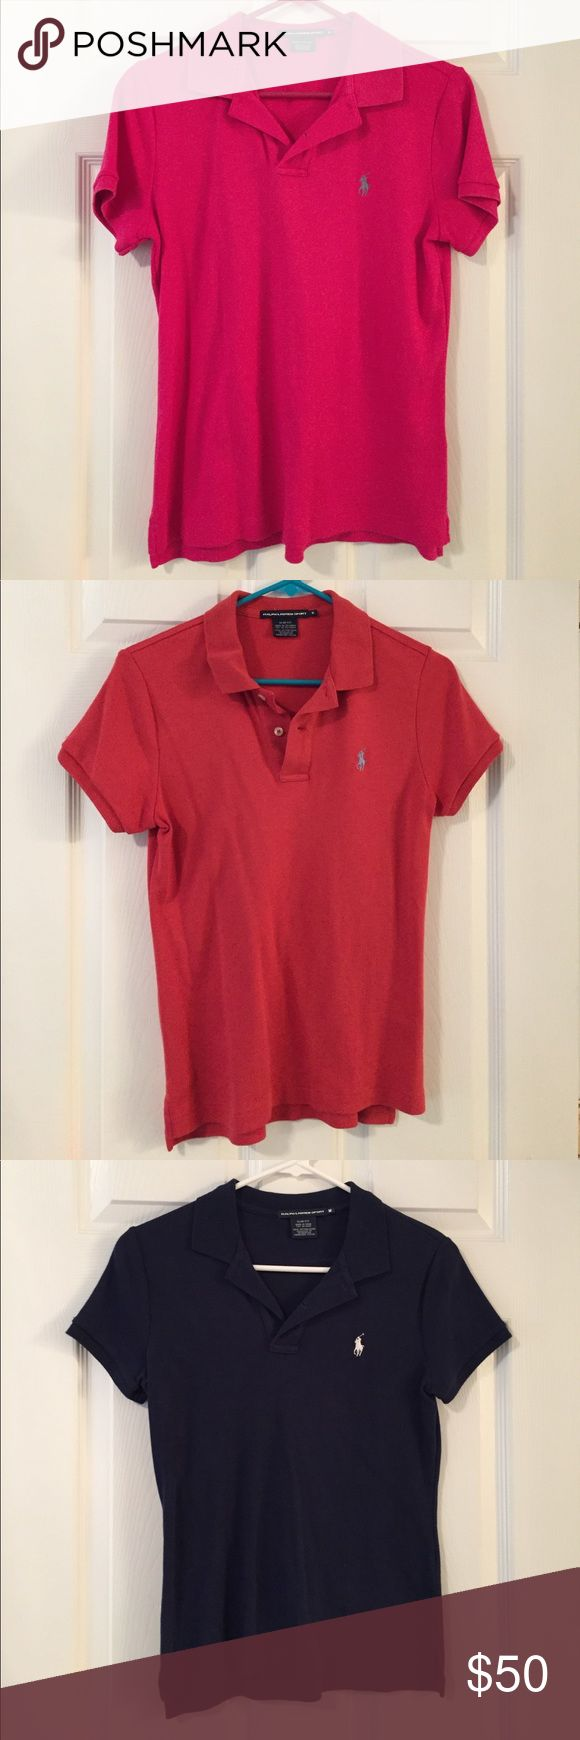 Set of 4 slim fit Ralph Lauren polos Set of 4 slim fit Ralph Lauren polos. All are slim fit except for the pink one. Colors: Bright pink, Nantucket red, navy blue and light blue, can separate for $10 each. Ralph Lauren Tops